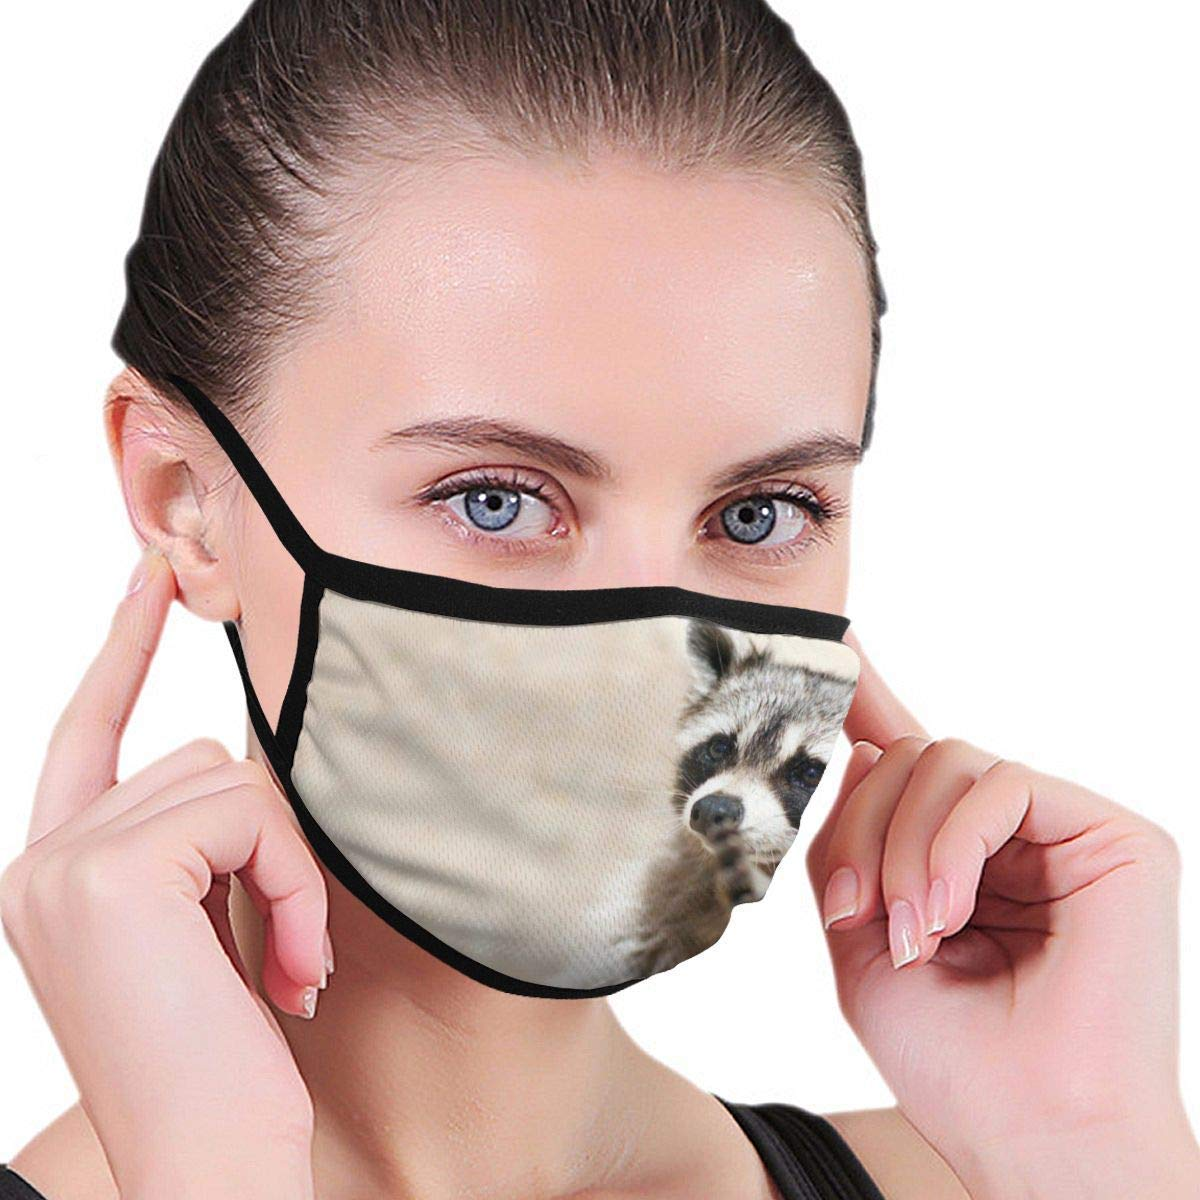 Bdwuhs Mascarillas Bucales Dust Mask Smart Animals Racoon Anti Pollution Breathable Respirator Mask Grade Flu Mask Carbon Activated Filtration – Reusable Washable – Comfy Polyester Adjustable